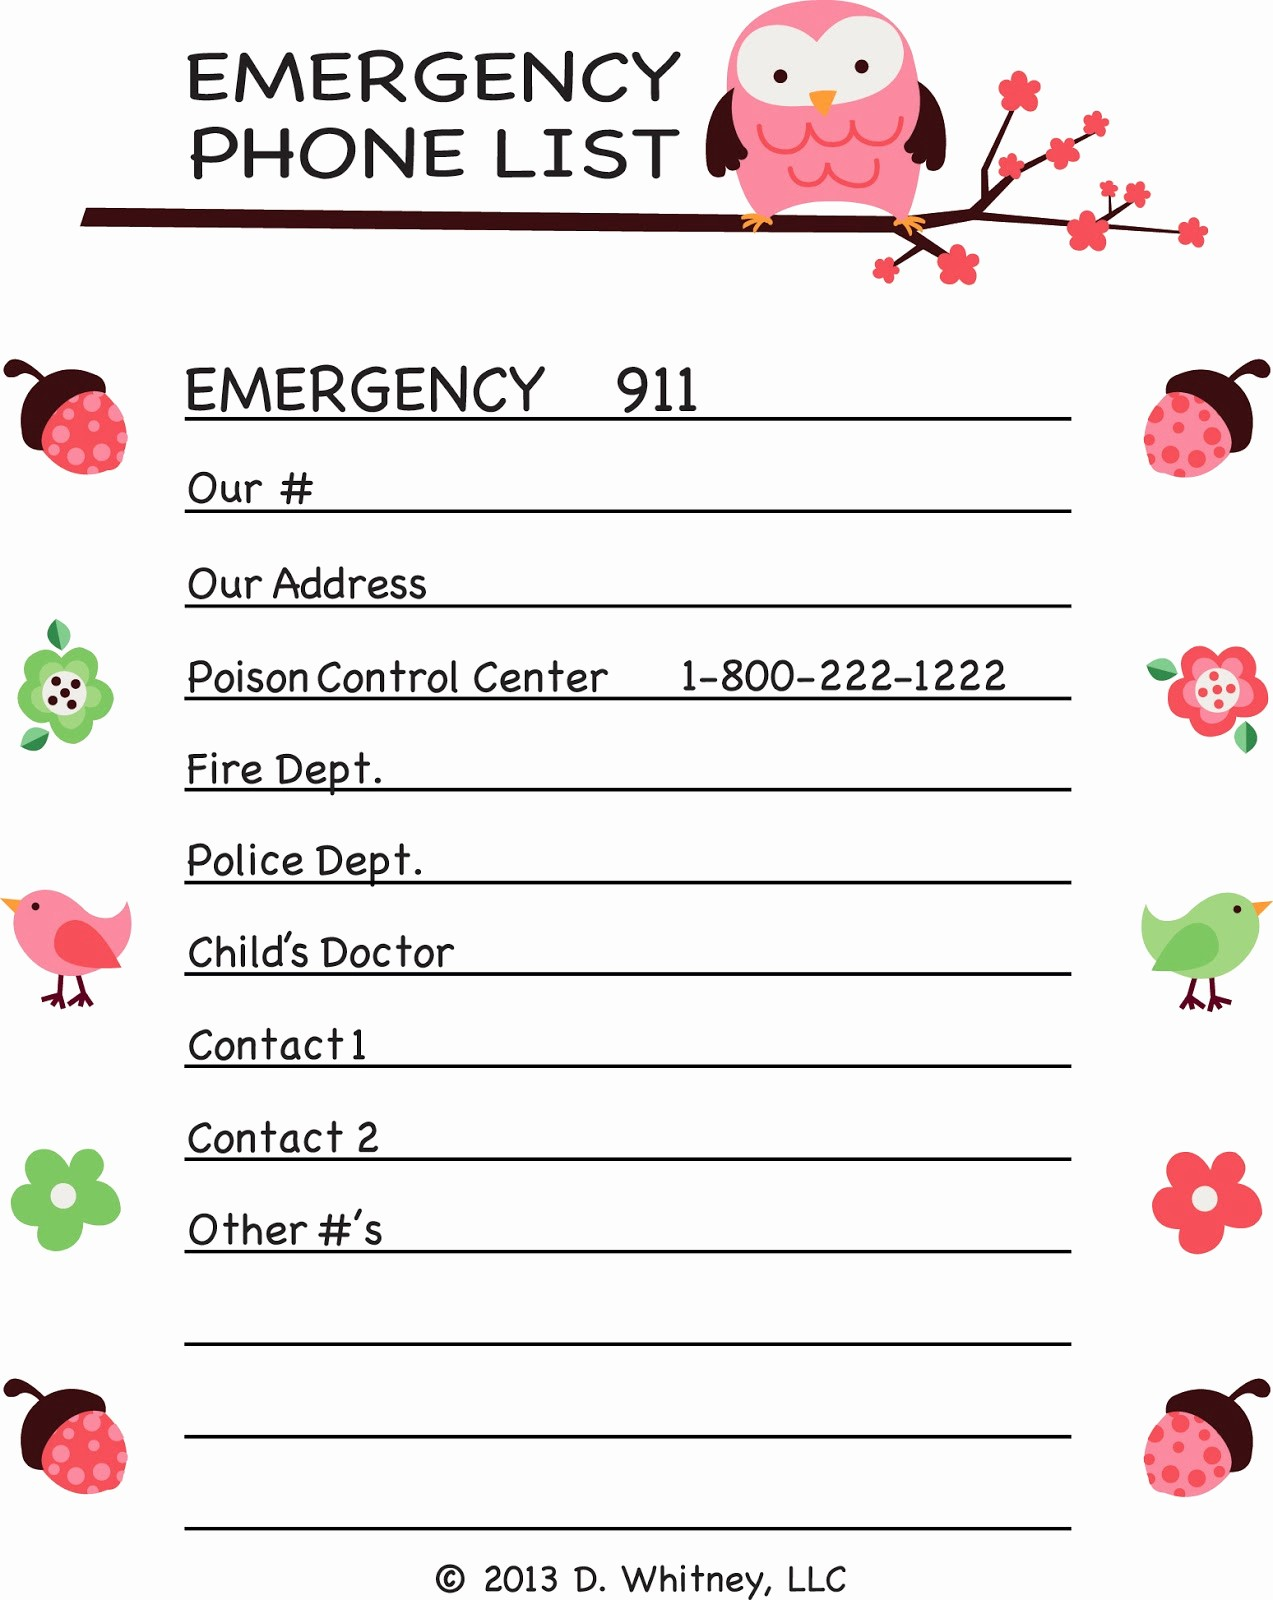 Emergency Contact List for Kids Awesome Parking Pal Emergency Phone List